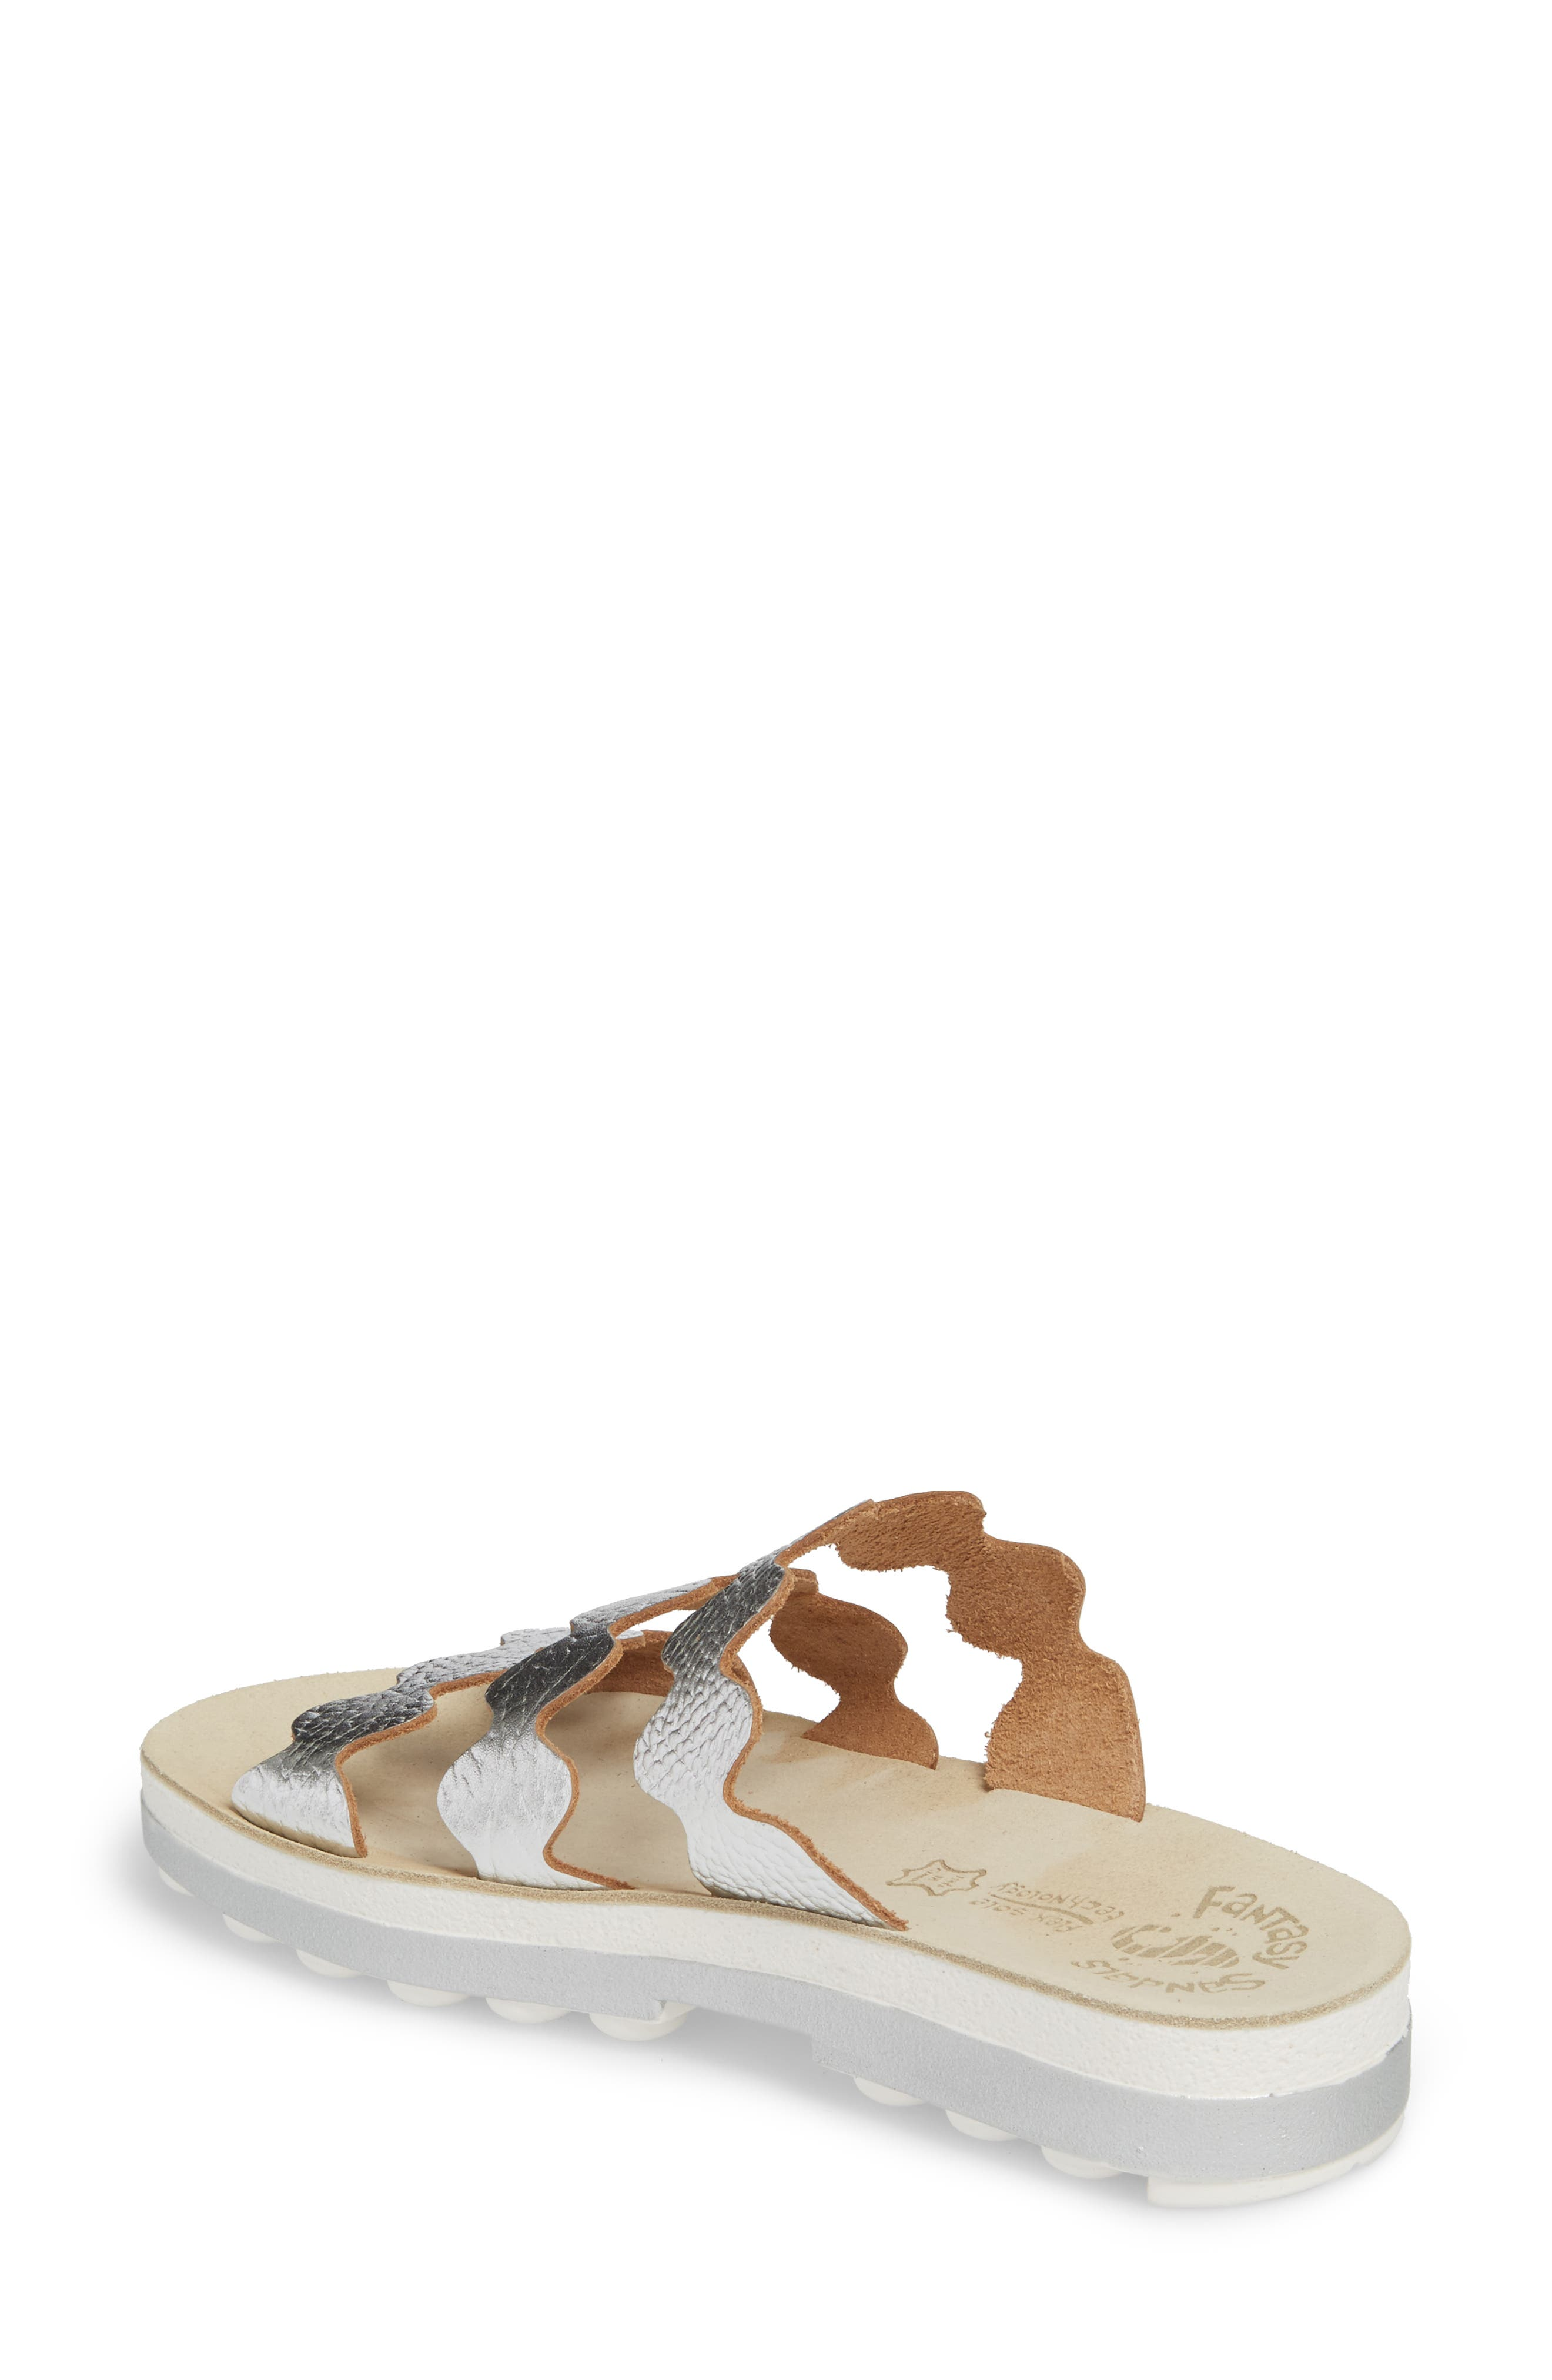 Waves Slide Sandal,                             Alternate thumbnail 2, color,                             SILVER VOLCANO LEATHER